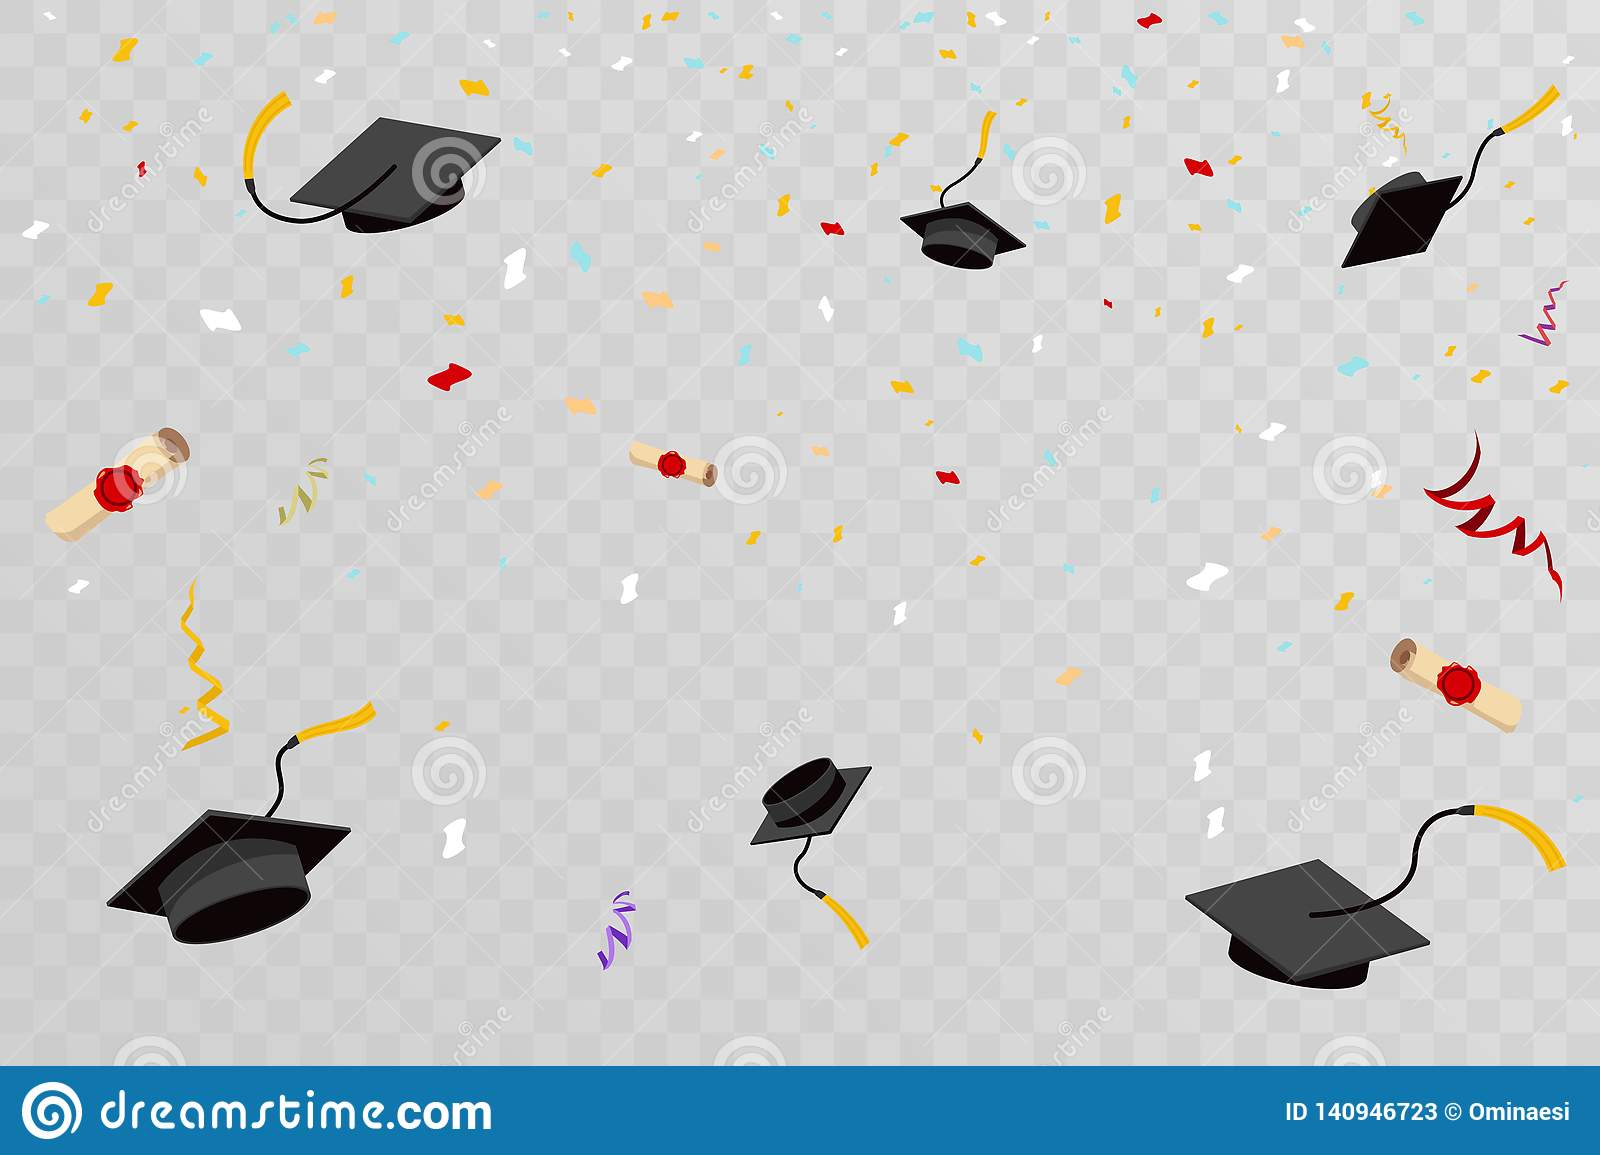 Confetti Graduation Hats Fly In Sky Poster Graduation Caps